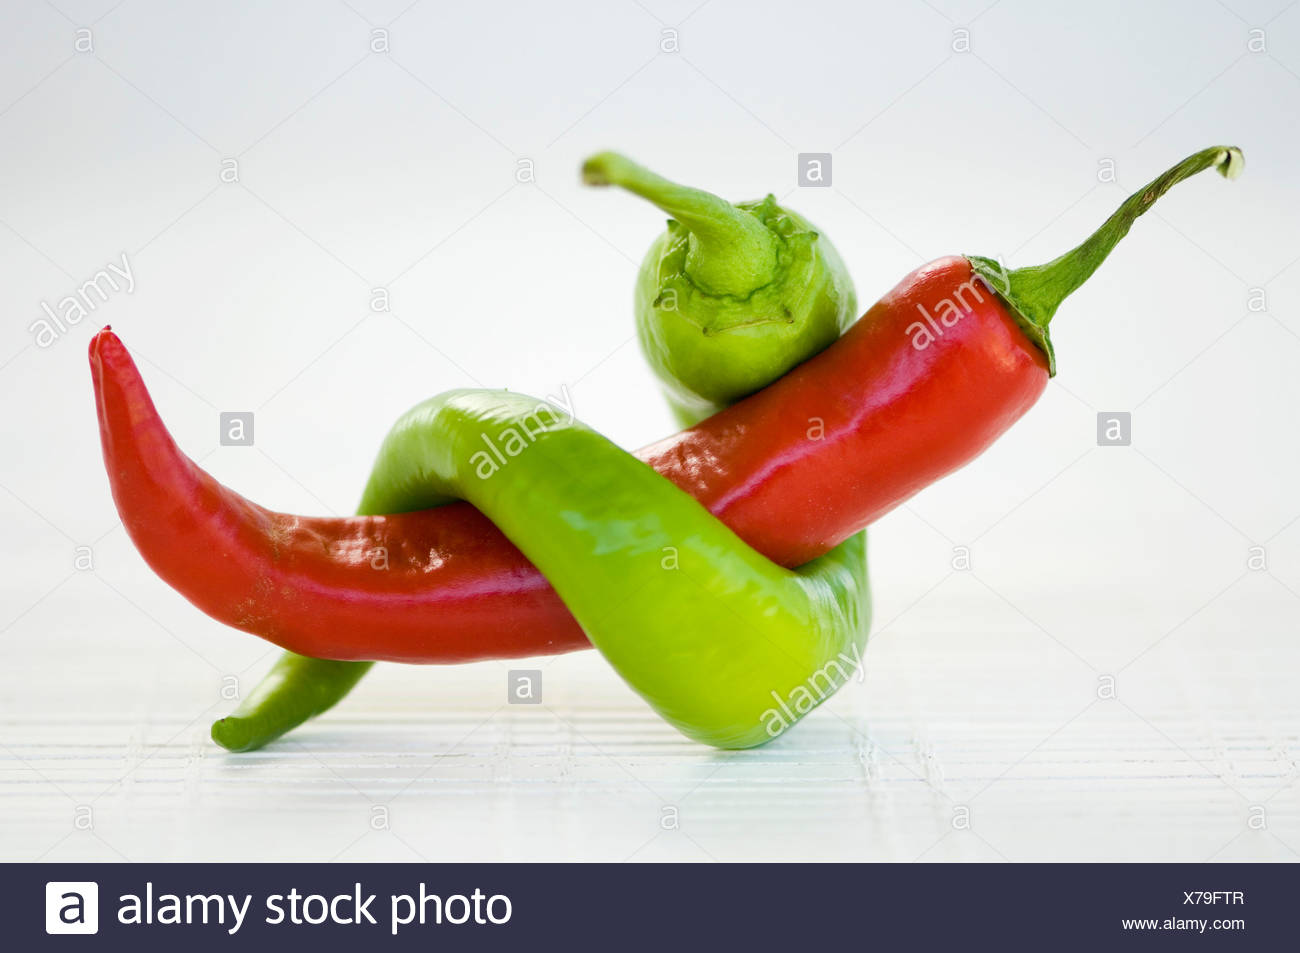 Two peppers tied together - Stock Image